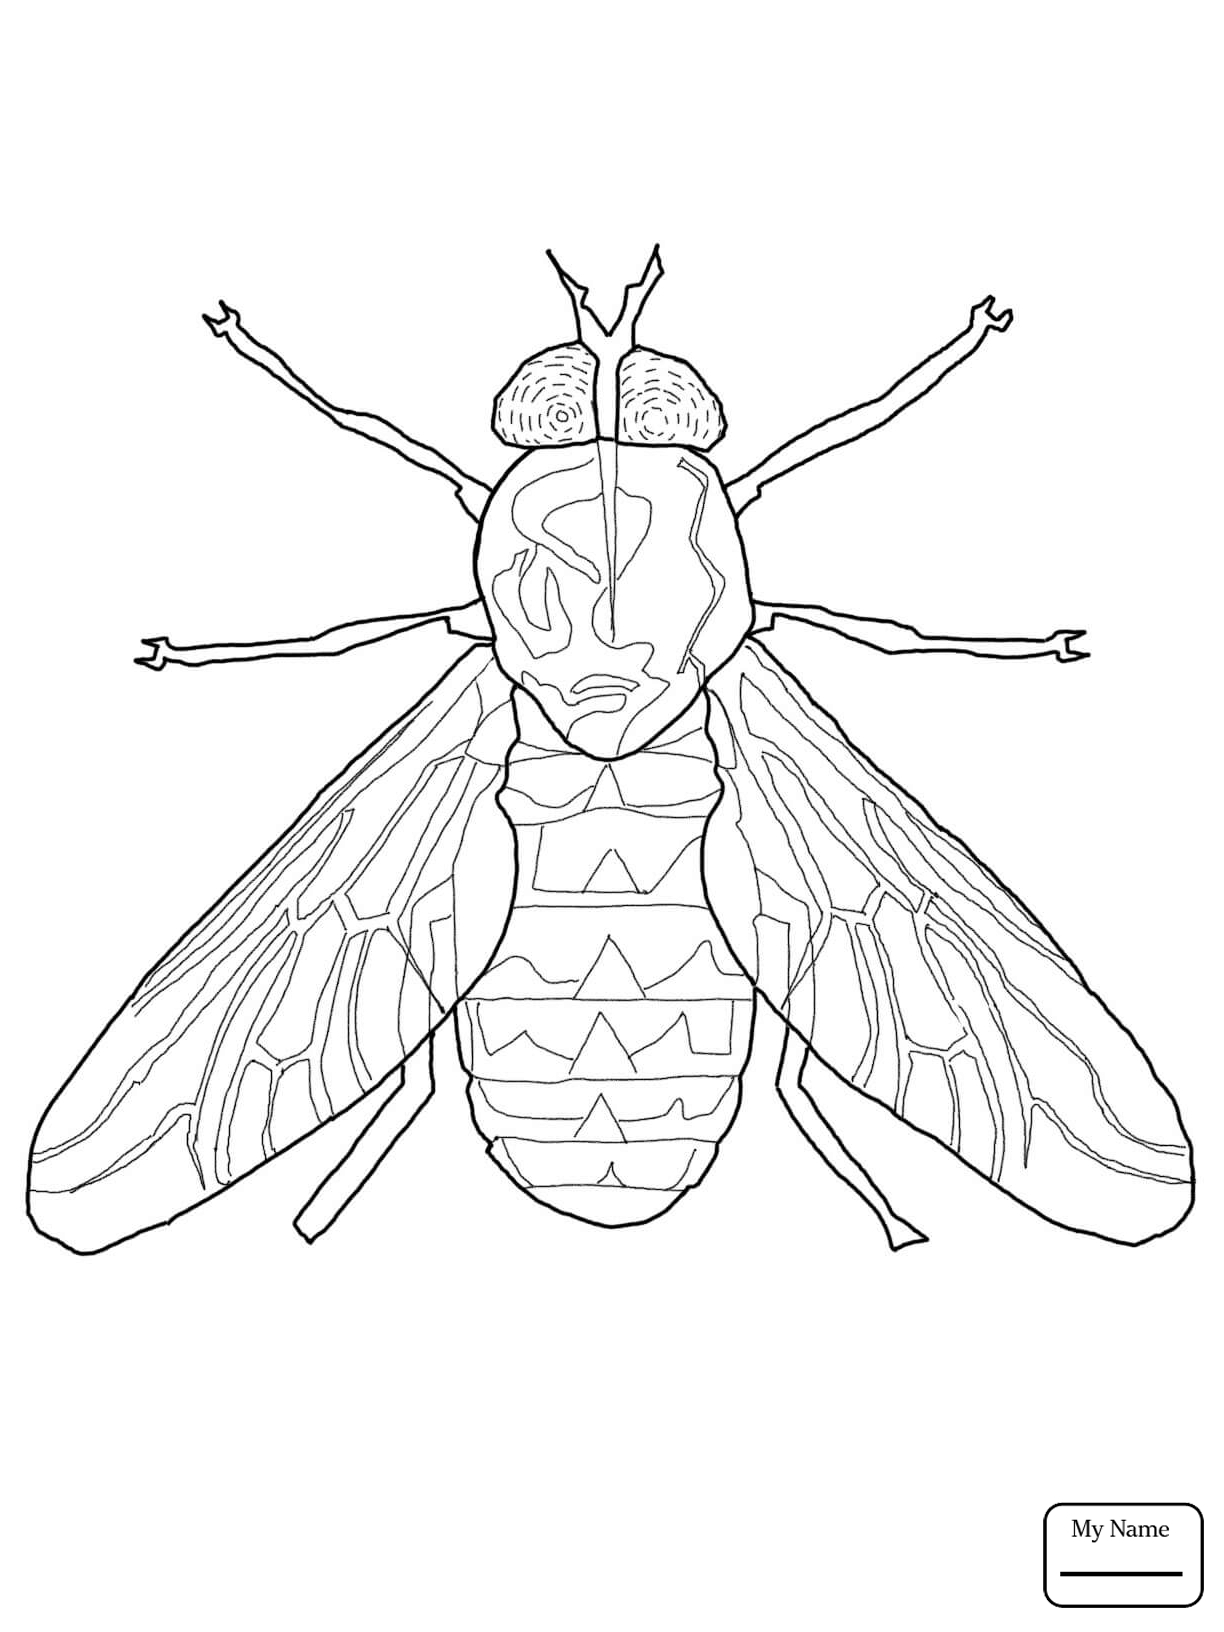 Firefly Insect Drawing At Getdrawings